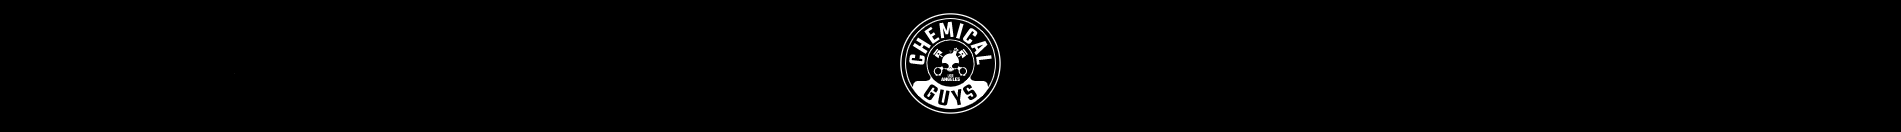 chemical guys black banner with logo